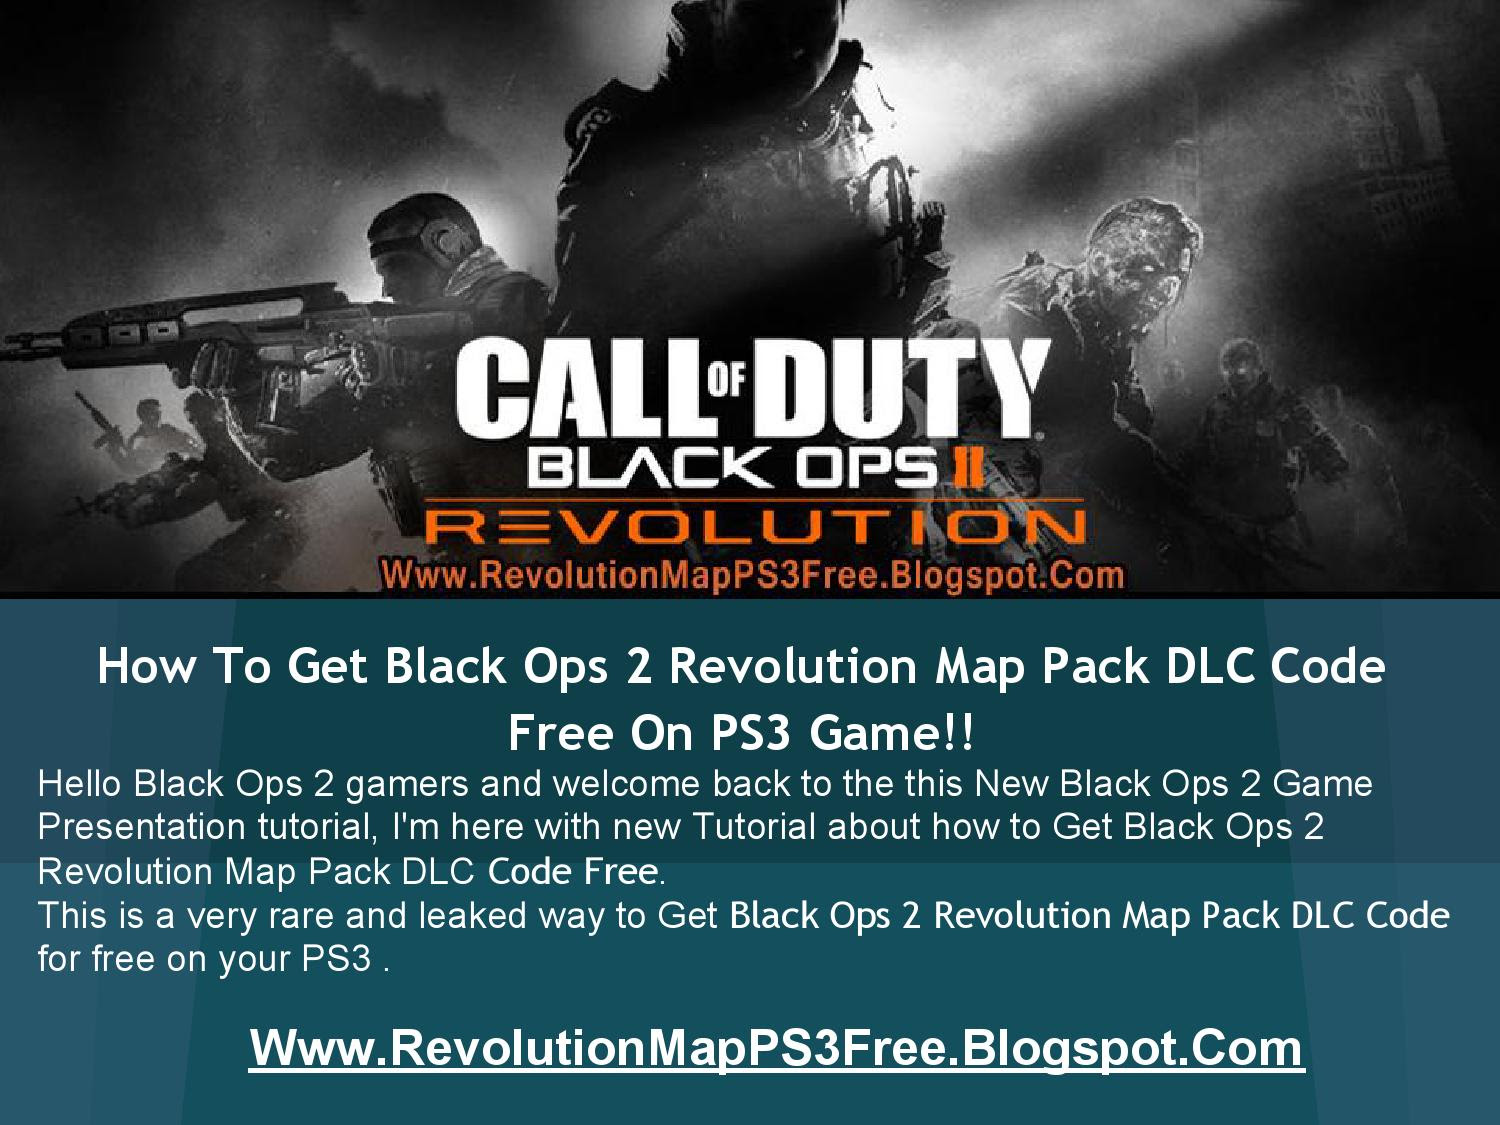 Call Of Duty Black Ops 2 Revolution Map Pack Dlc Codes